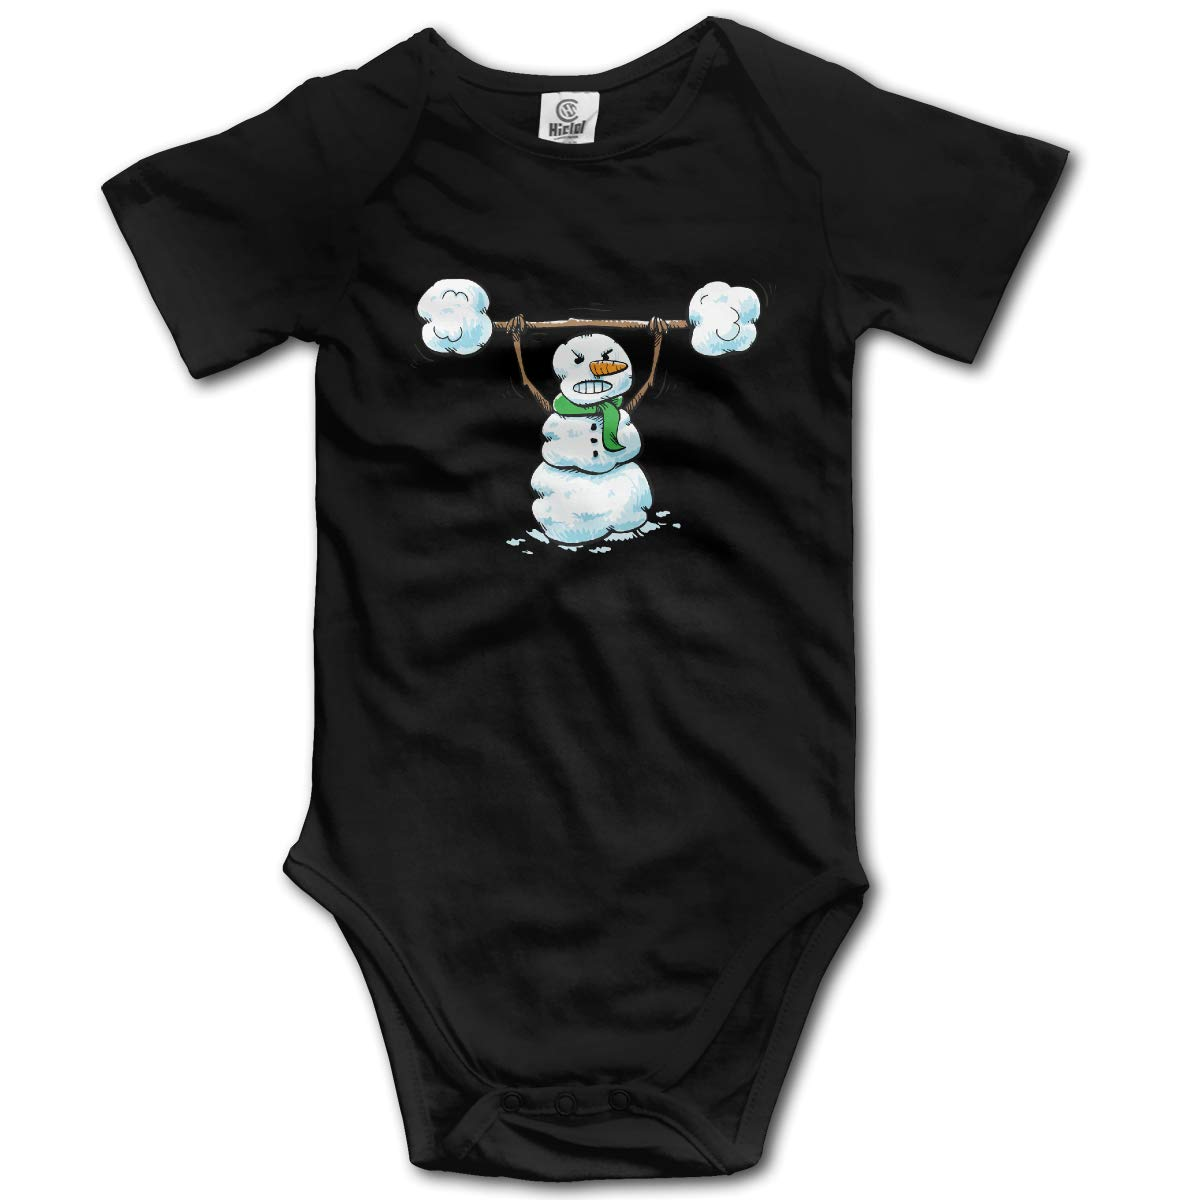 Snowman Workout Unisex Solid Baby Short Sleeve Romper Pajamas 0-2T